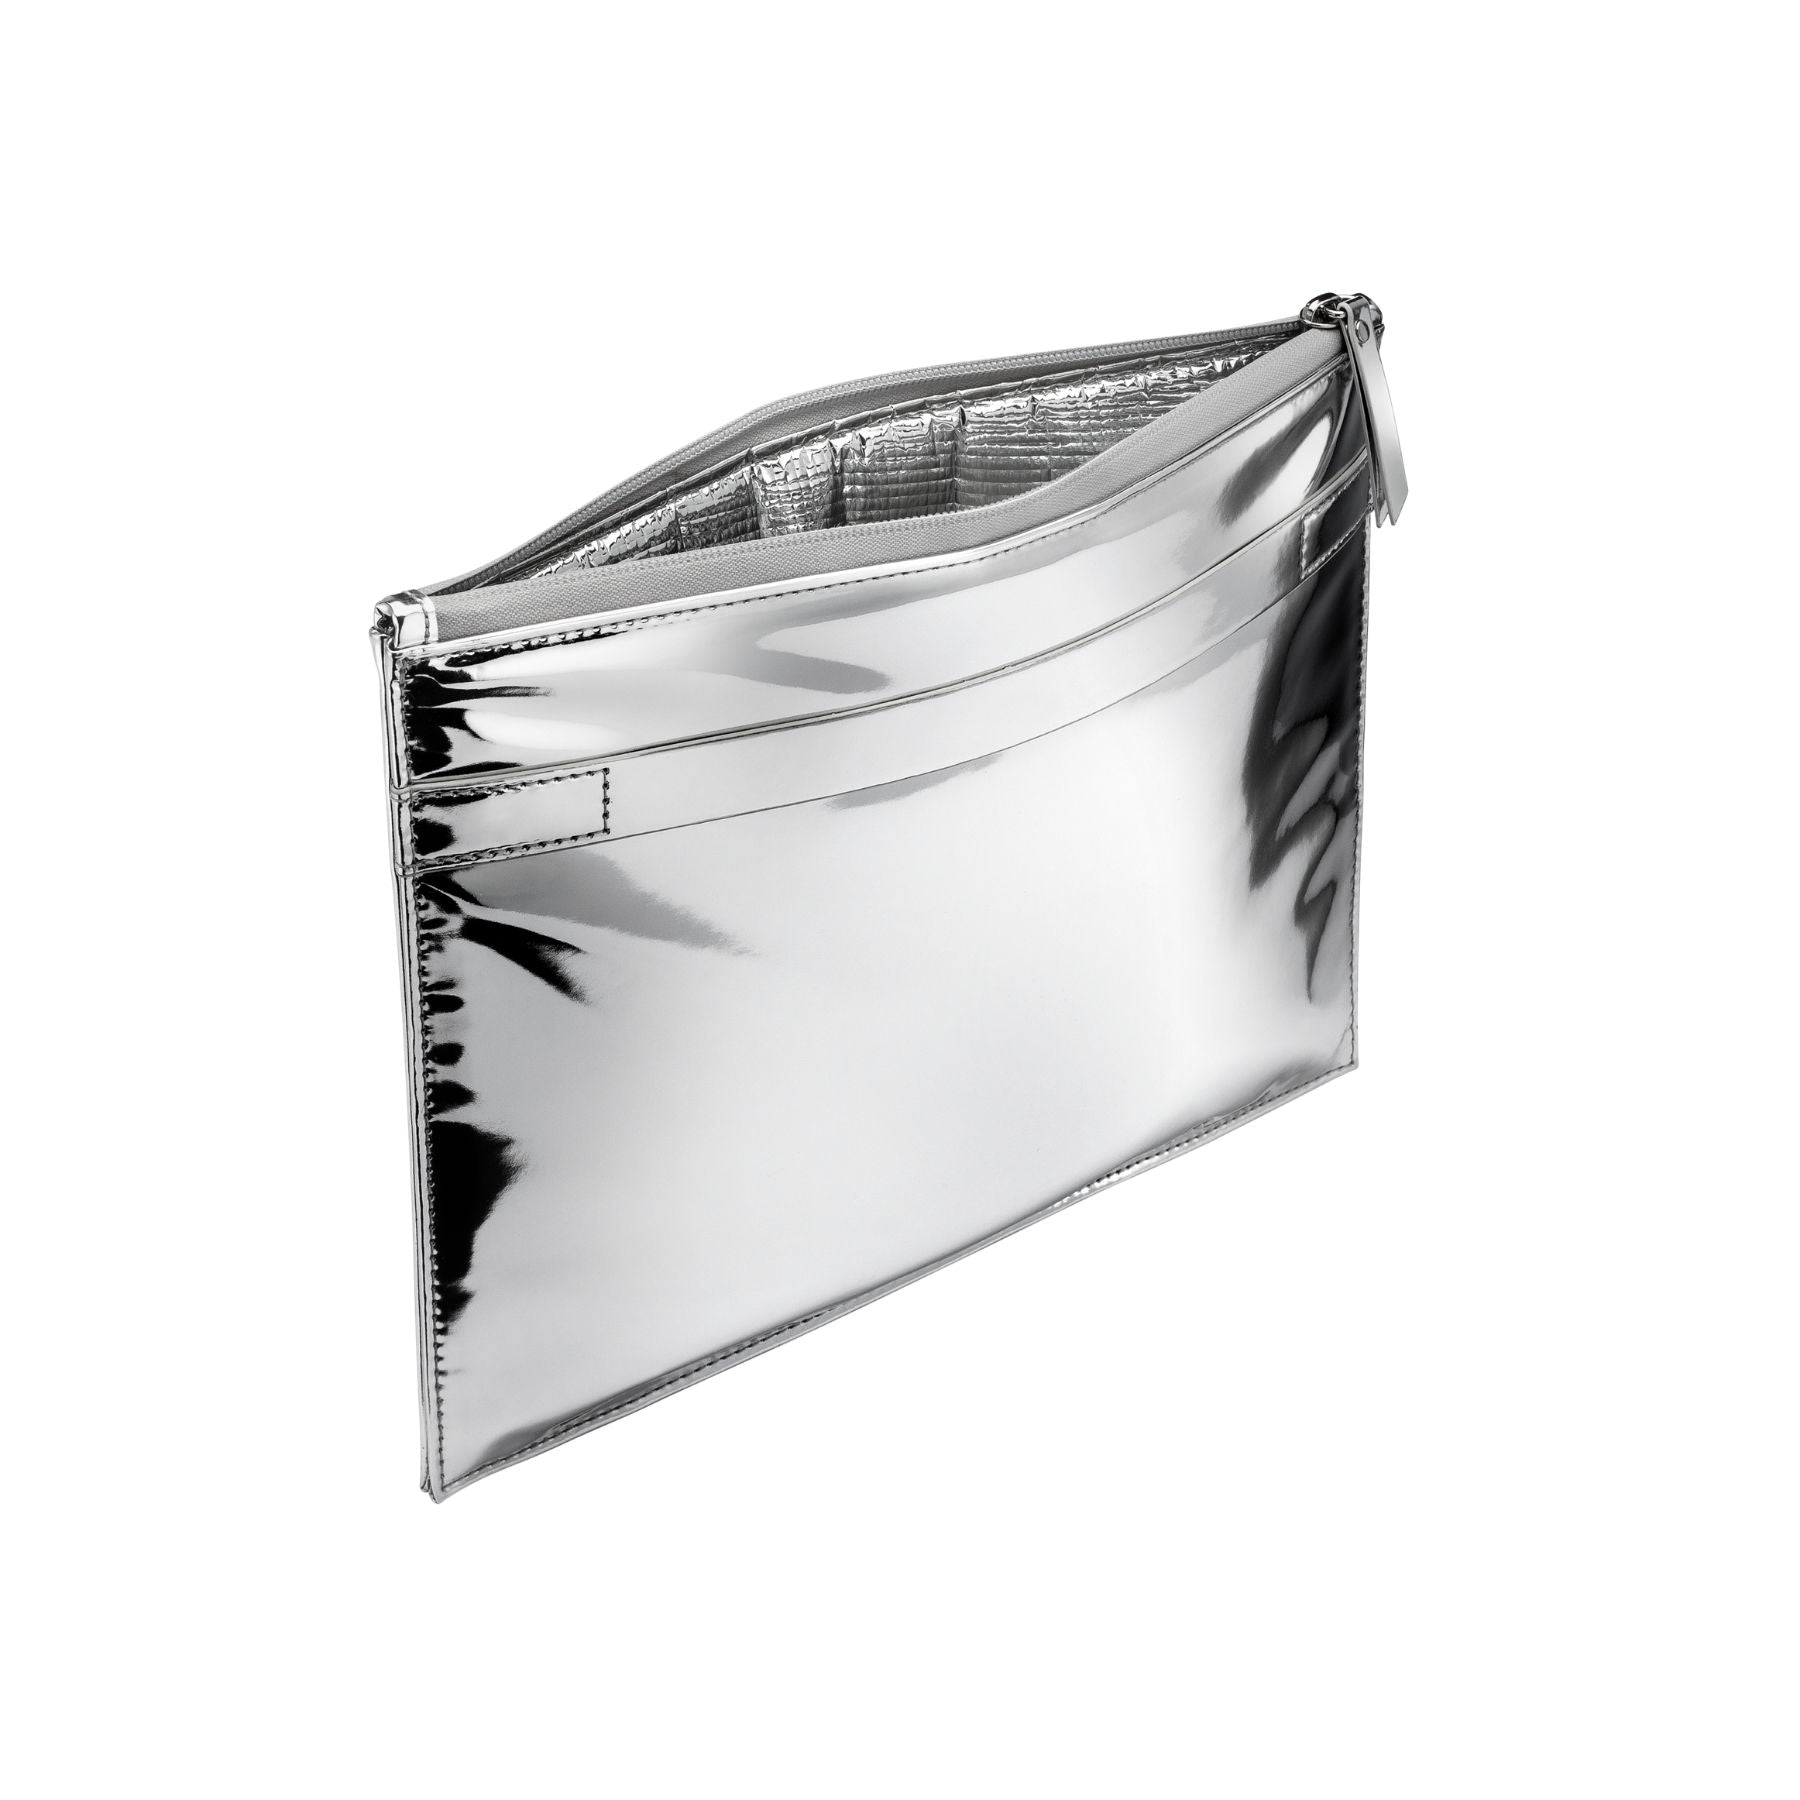 WELLinsulated Pouch | Thermal Silver Clutch